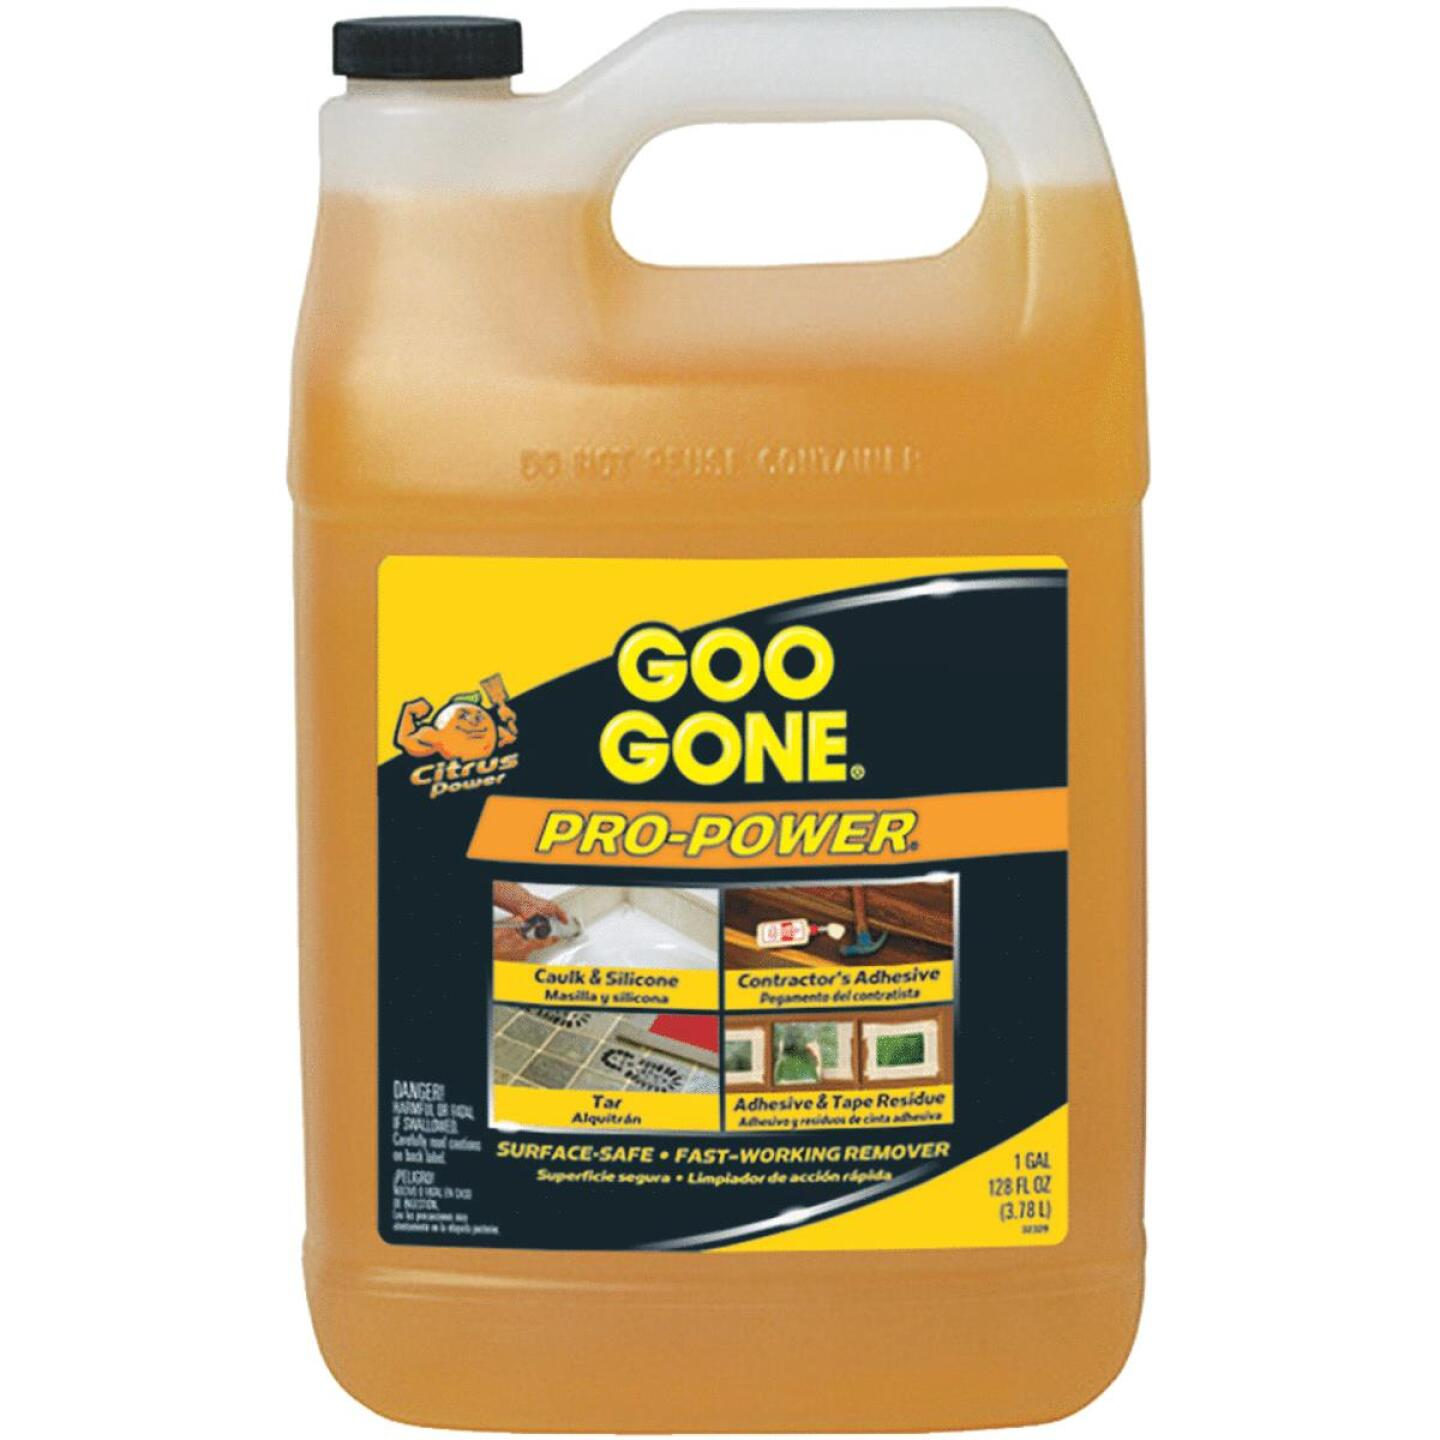 Goo Gone 1 Gal. Pro-Power Adhesive Remover Image 42